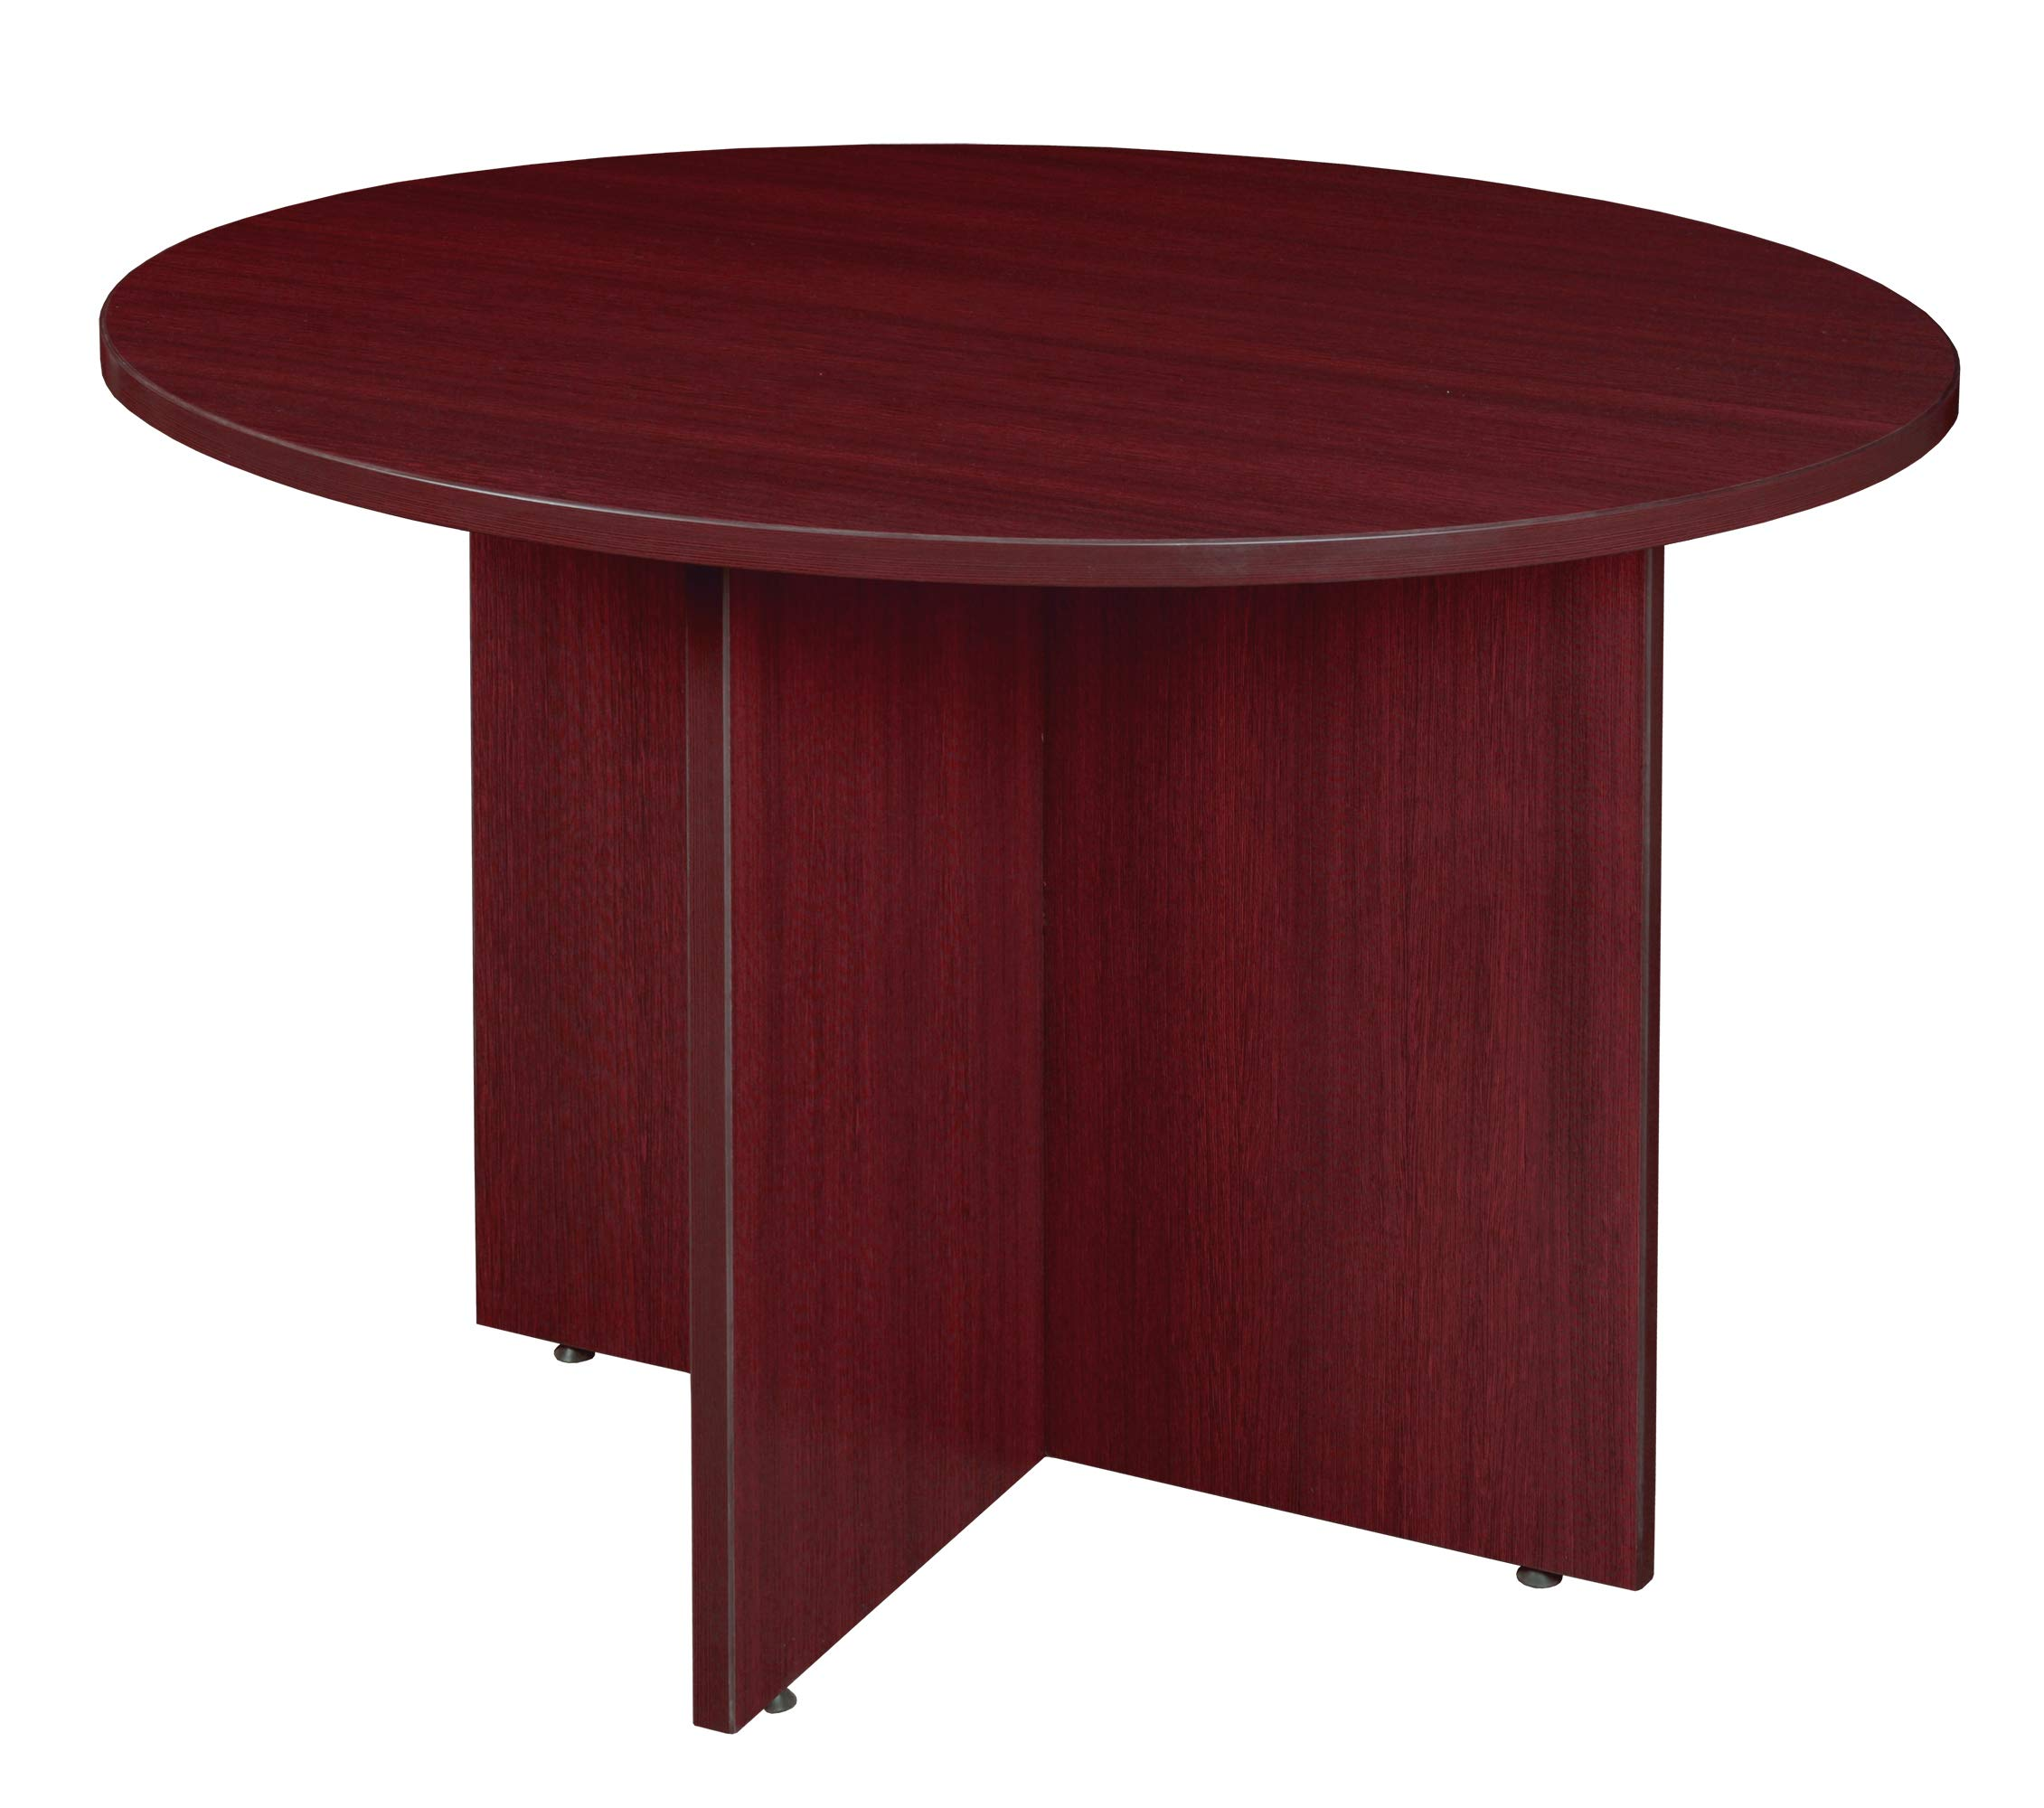 Regency LCTR42-MH Conference Table Legacy Round 42-inch Mahogany